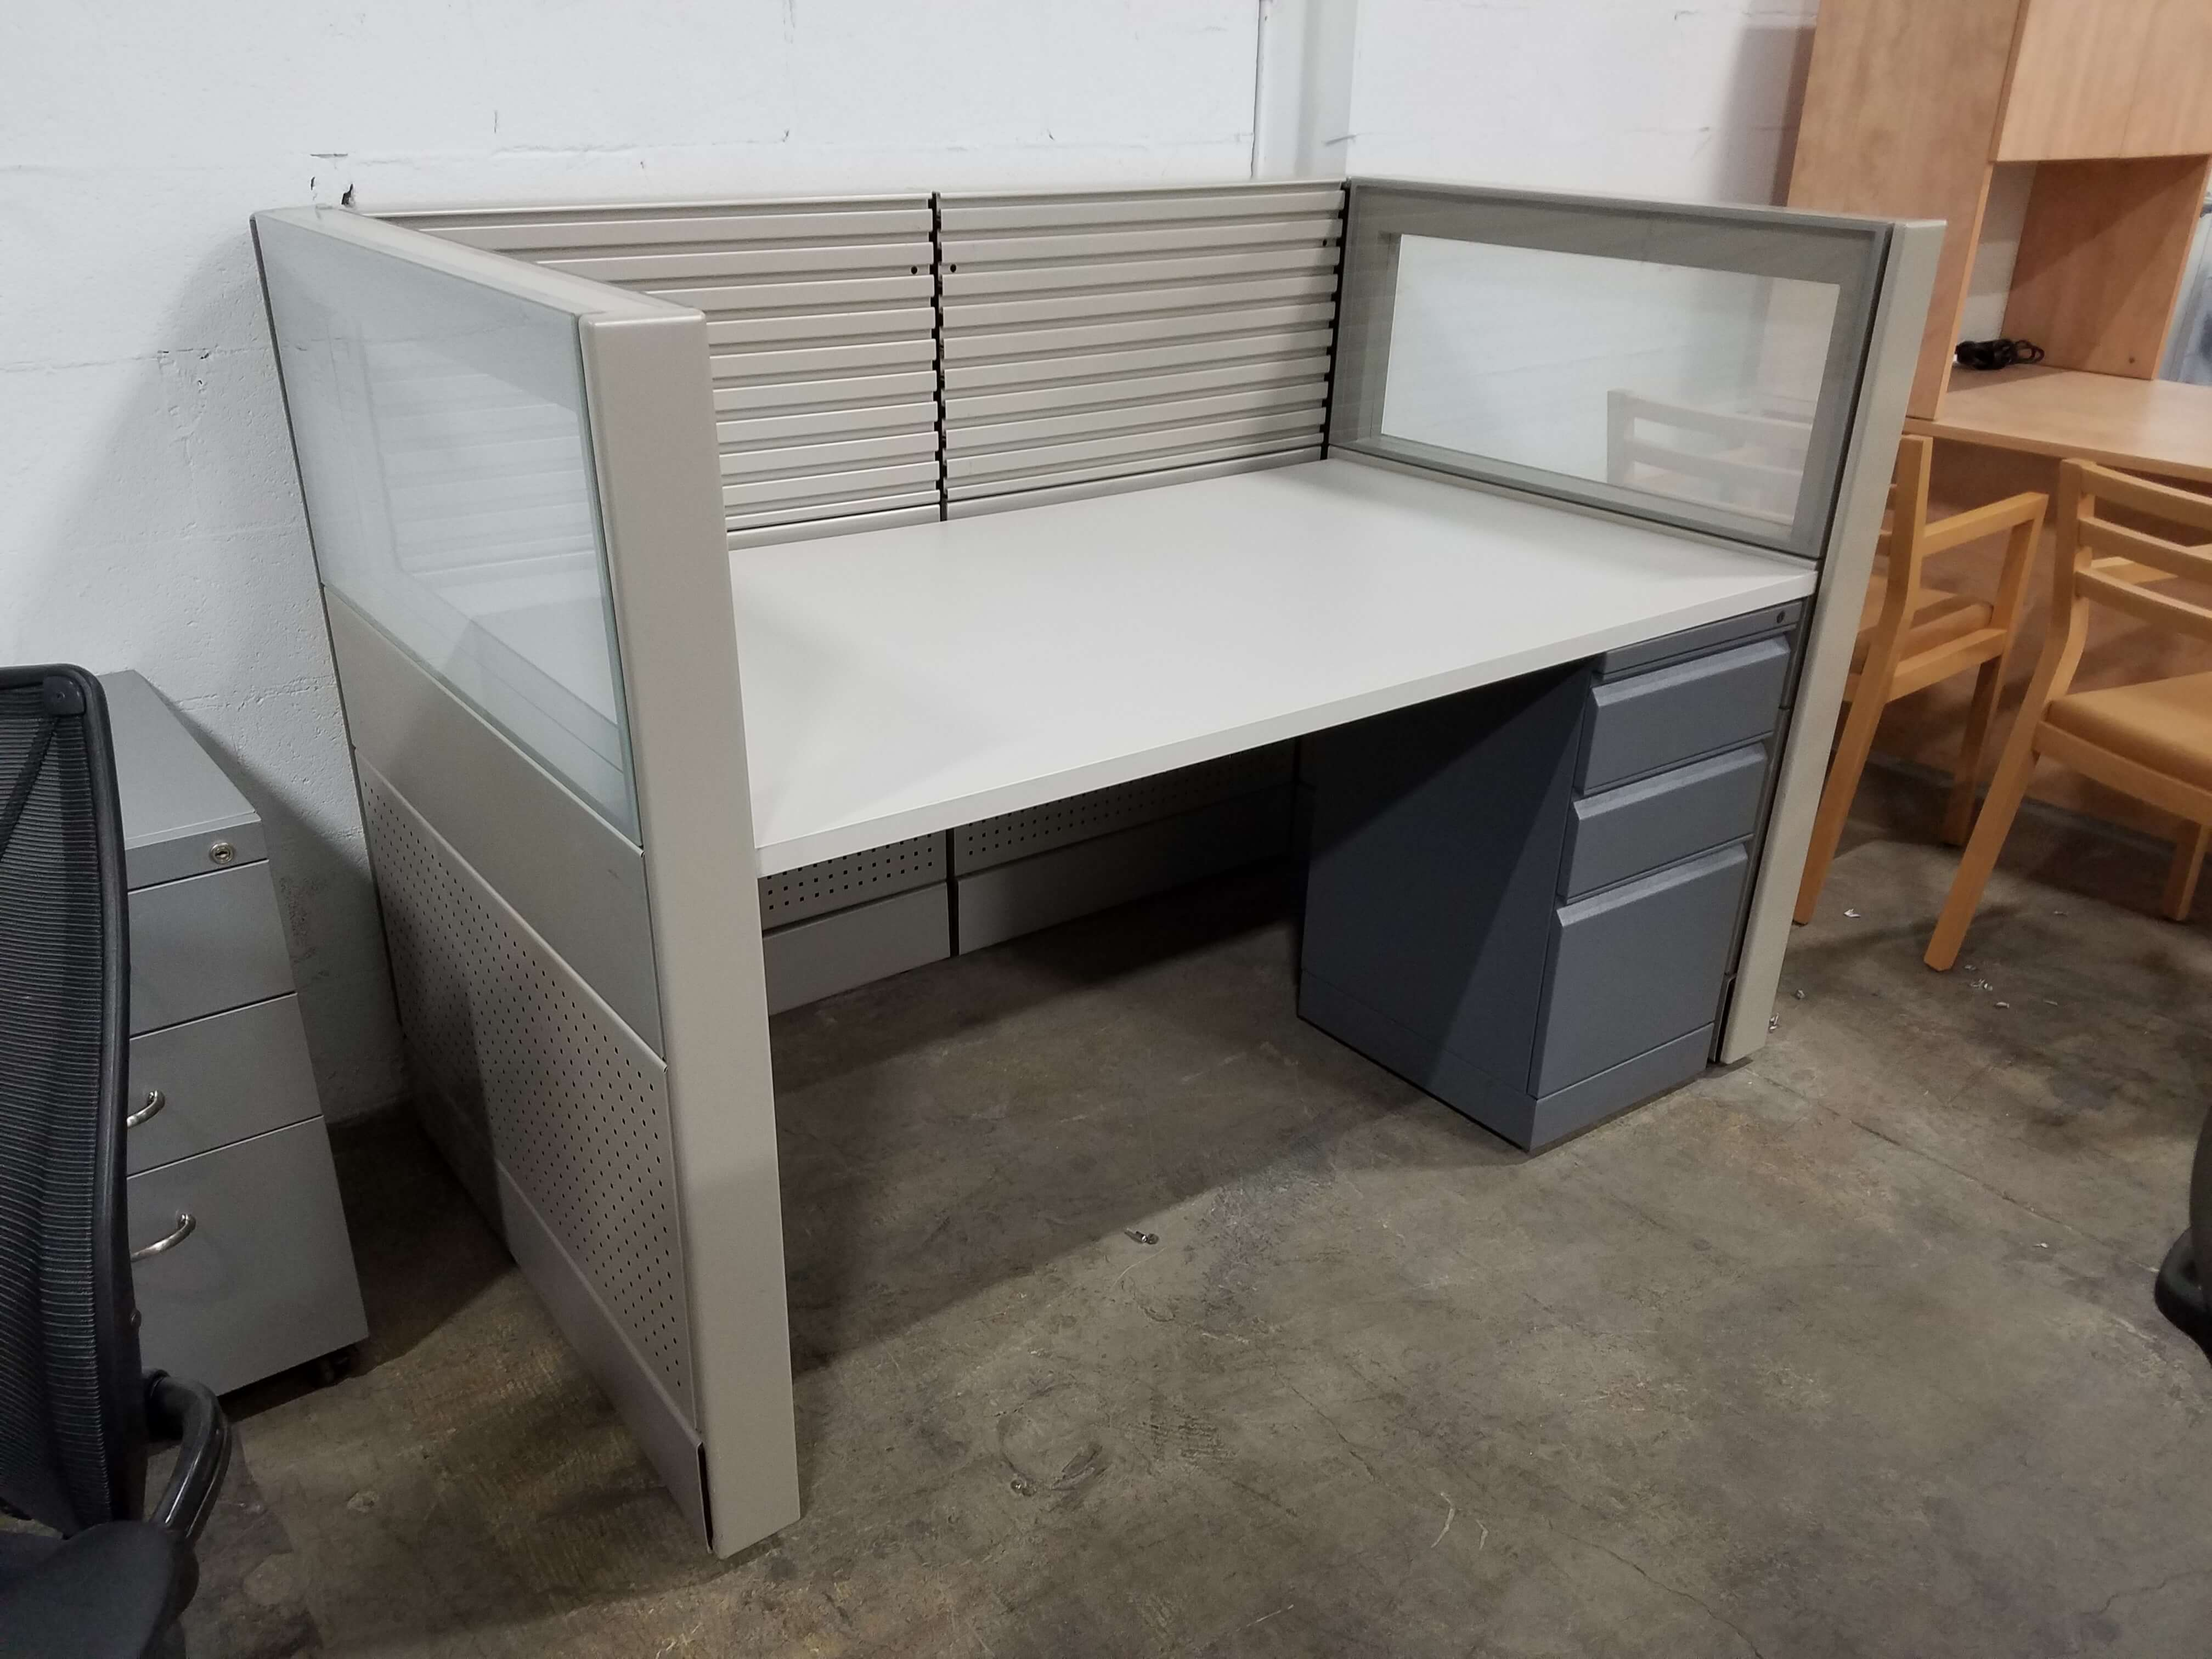 herman miller desk chairs genuine leather chair and ottoman used ethospace 5x3x46h - low panels cubicles